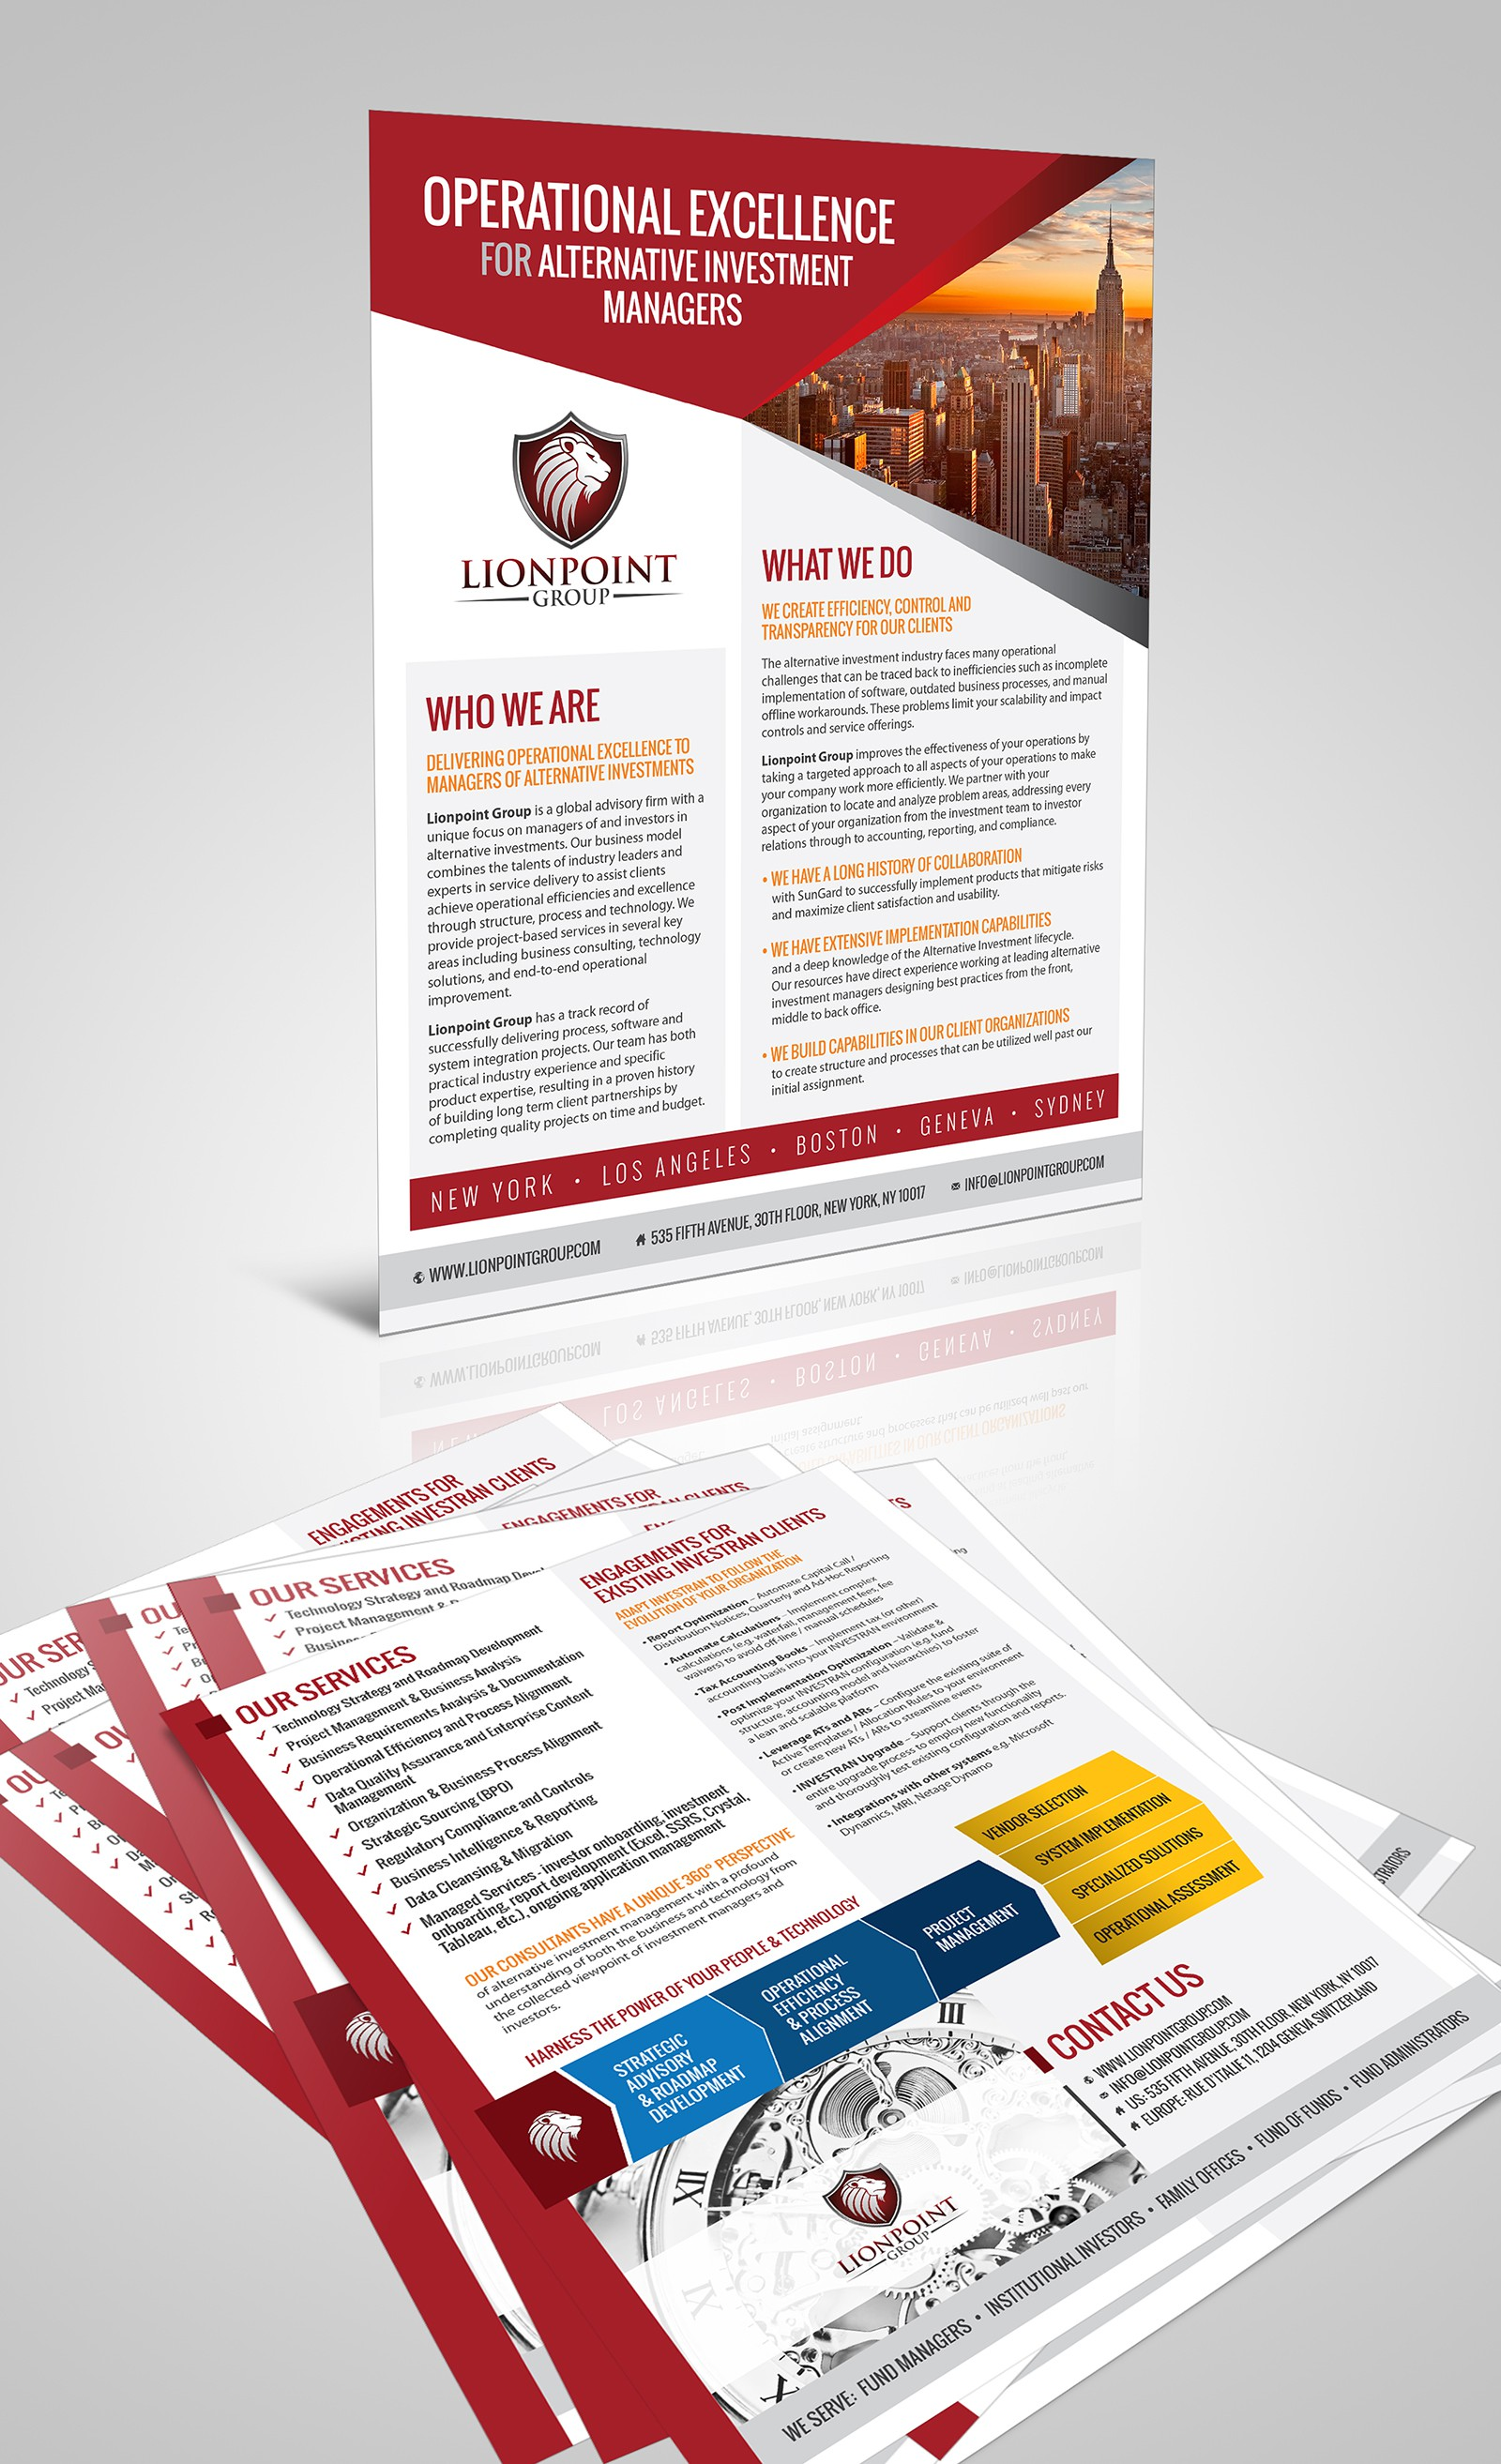 Start Up Consulting Firm Needs Captivating Trade Show Booth Flier!